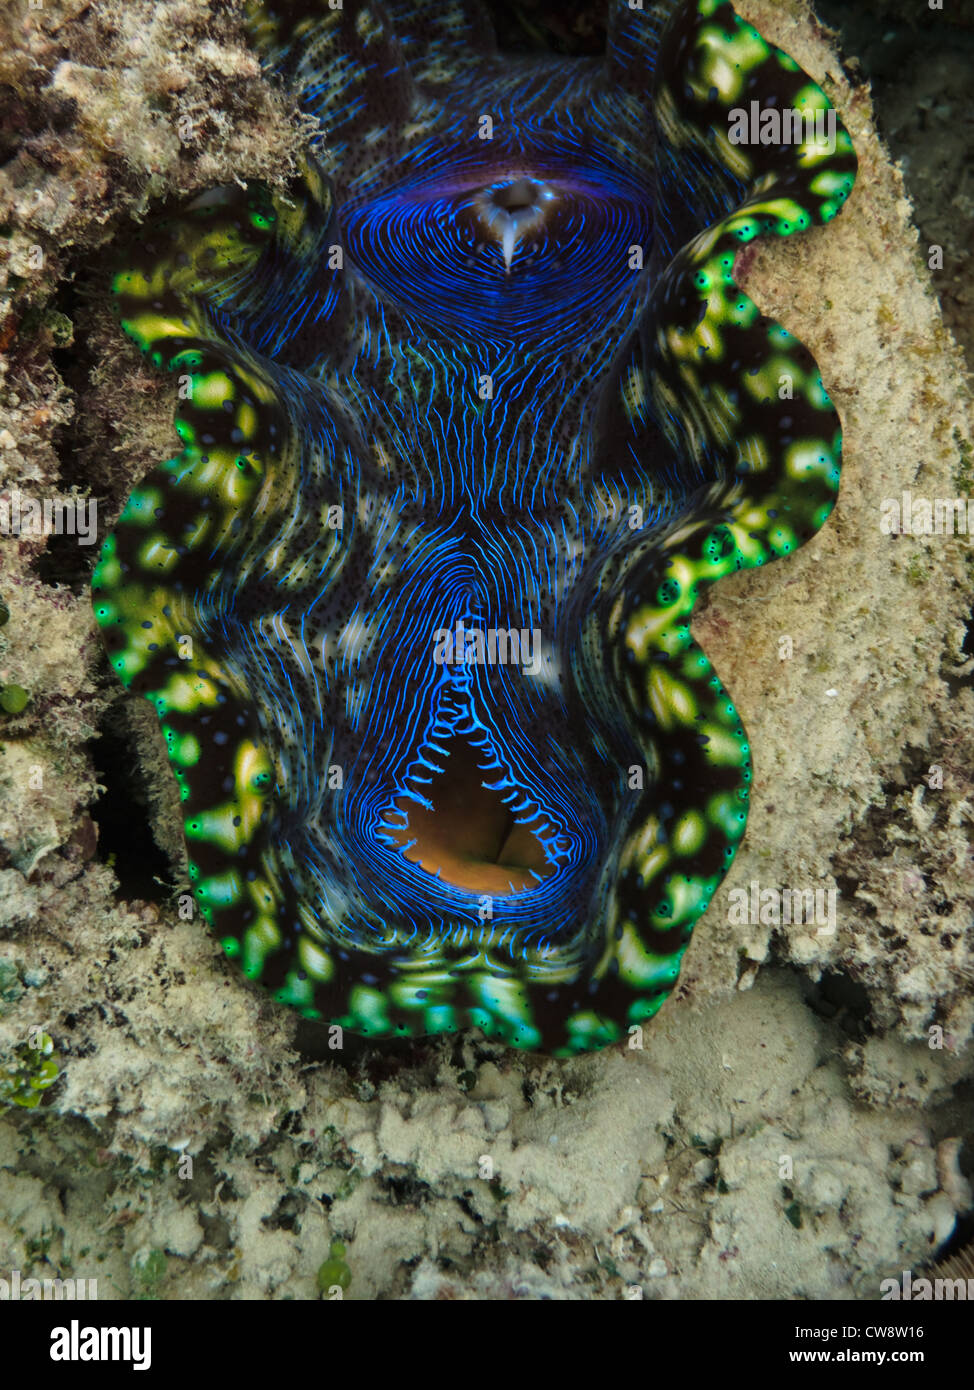 Closeup view of colorful open mouth of a giant clam, Tridacna Maxima, at Great Barrier Reef Marine Park Australia Stock Photo